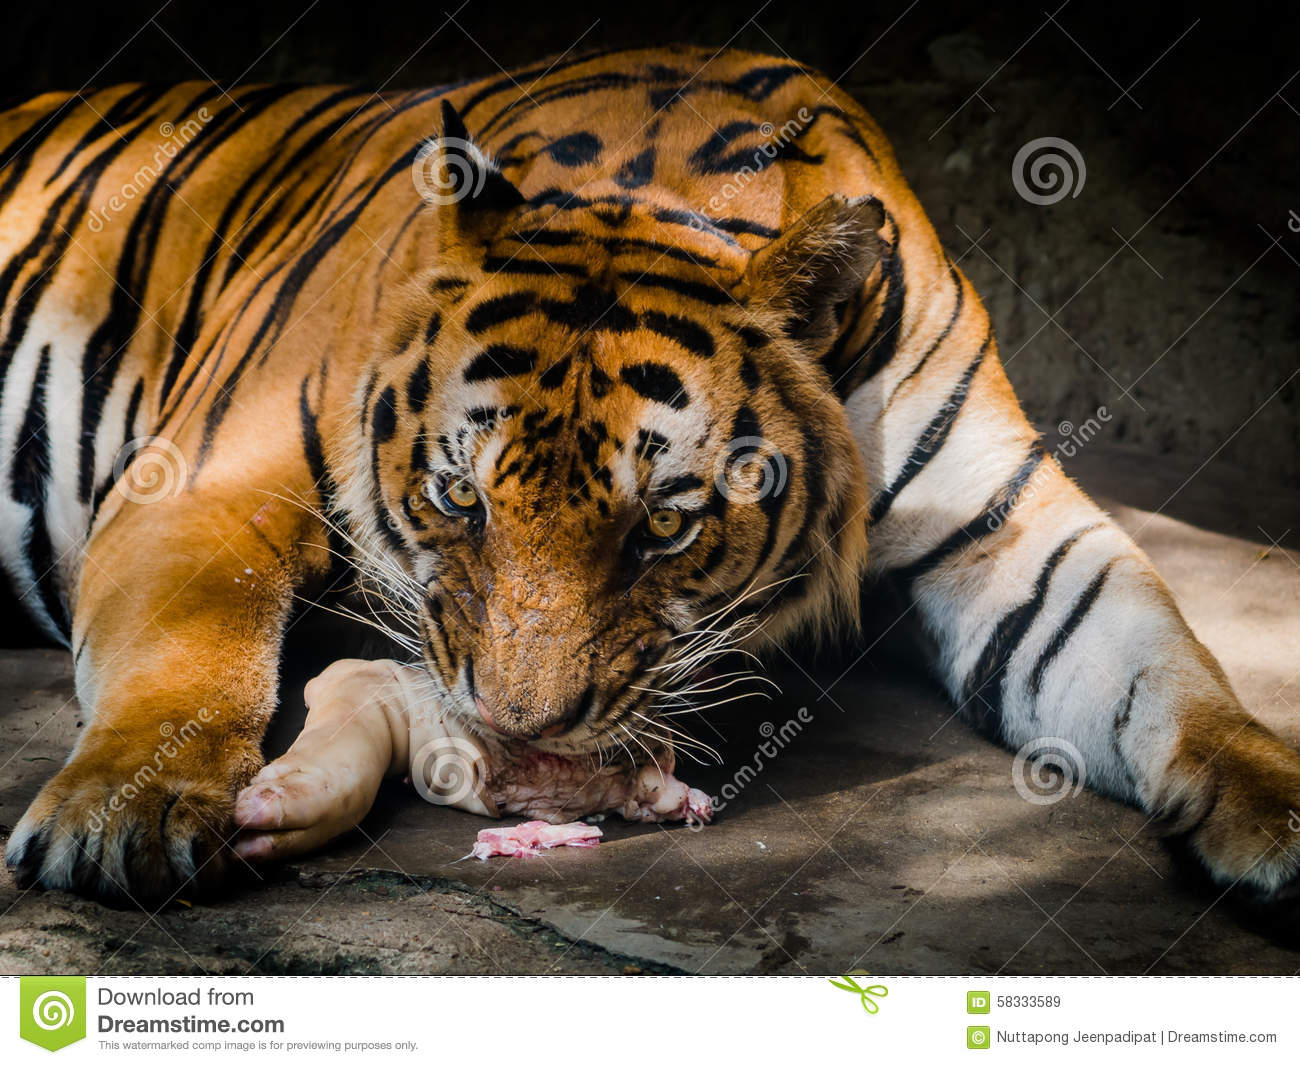 Tiger eating meat in a zoo stock image. Image of flesh ...